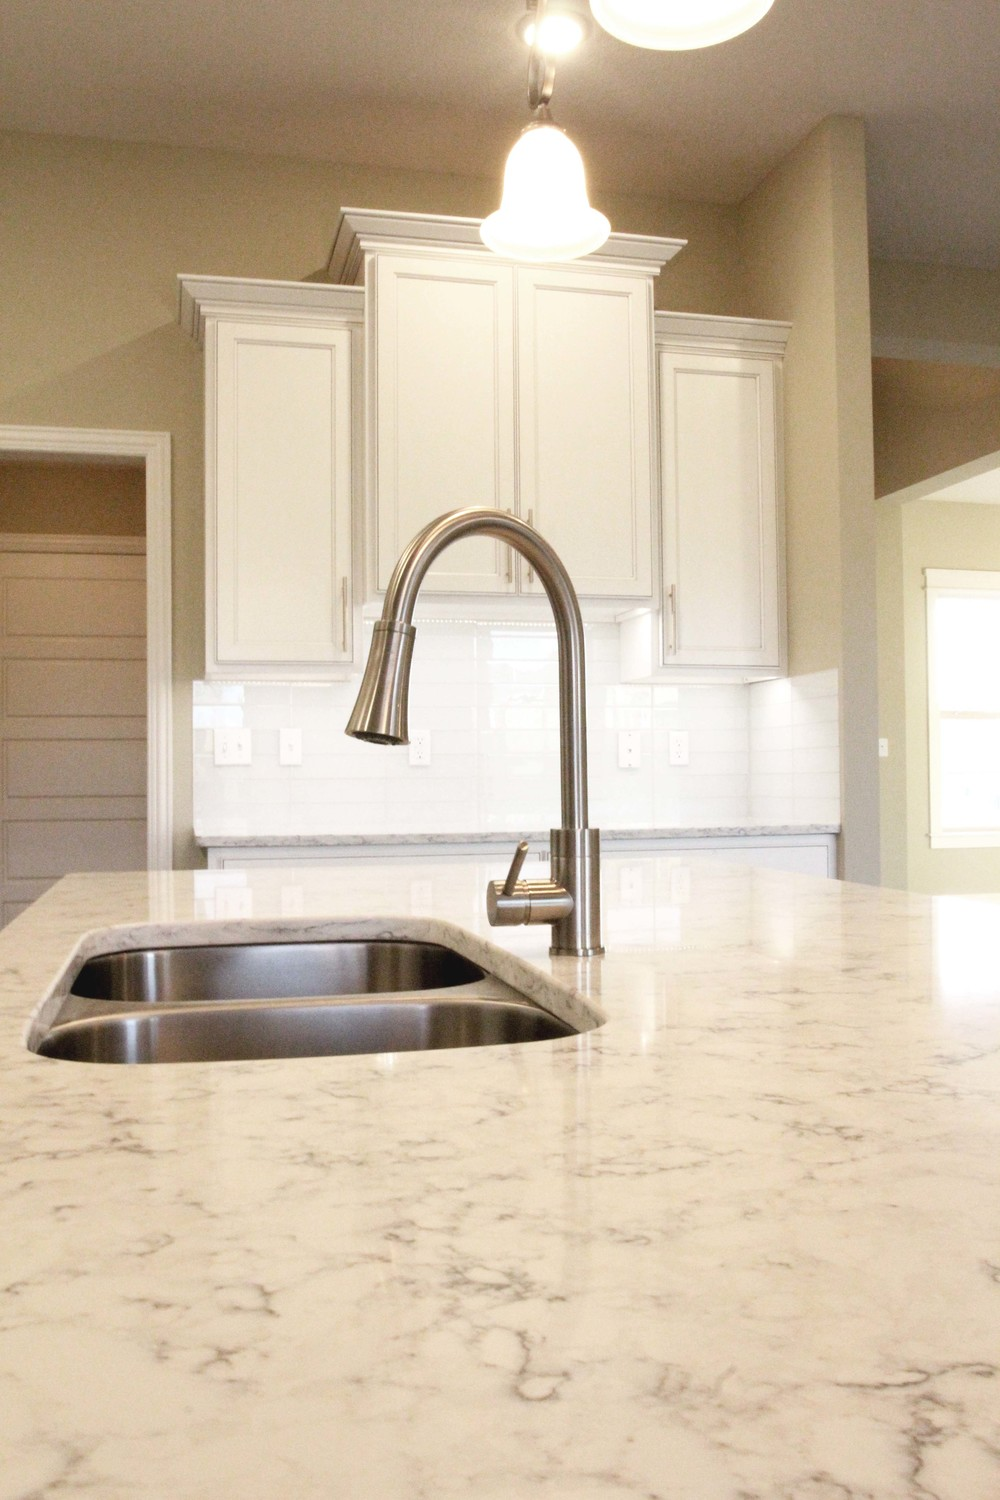 Kitchen_Island_2_Columbia_New_Homes.jpg